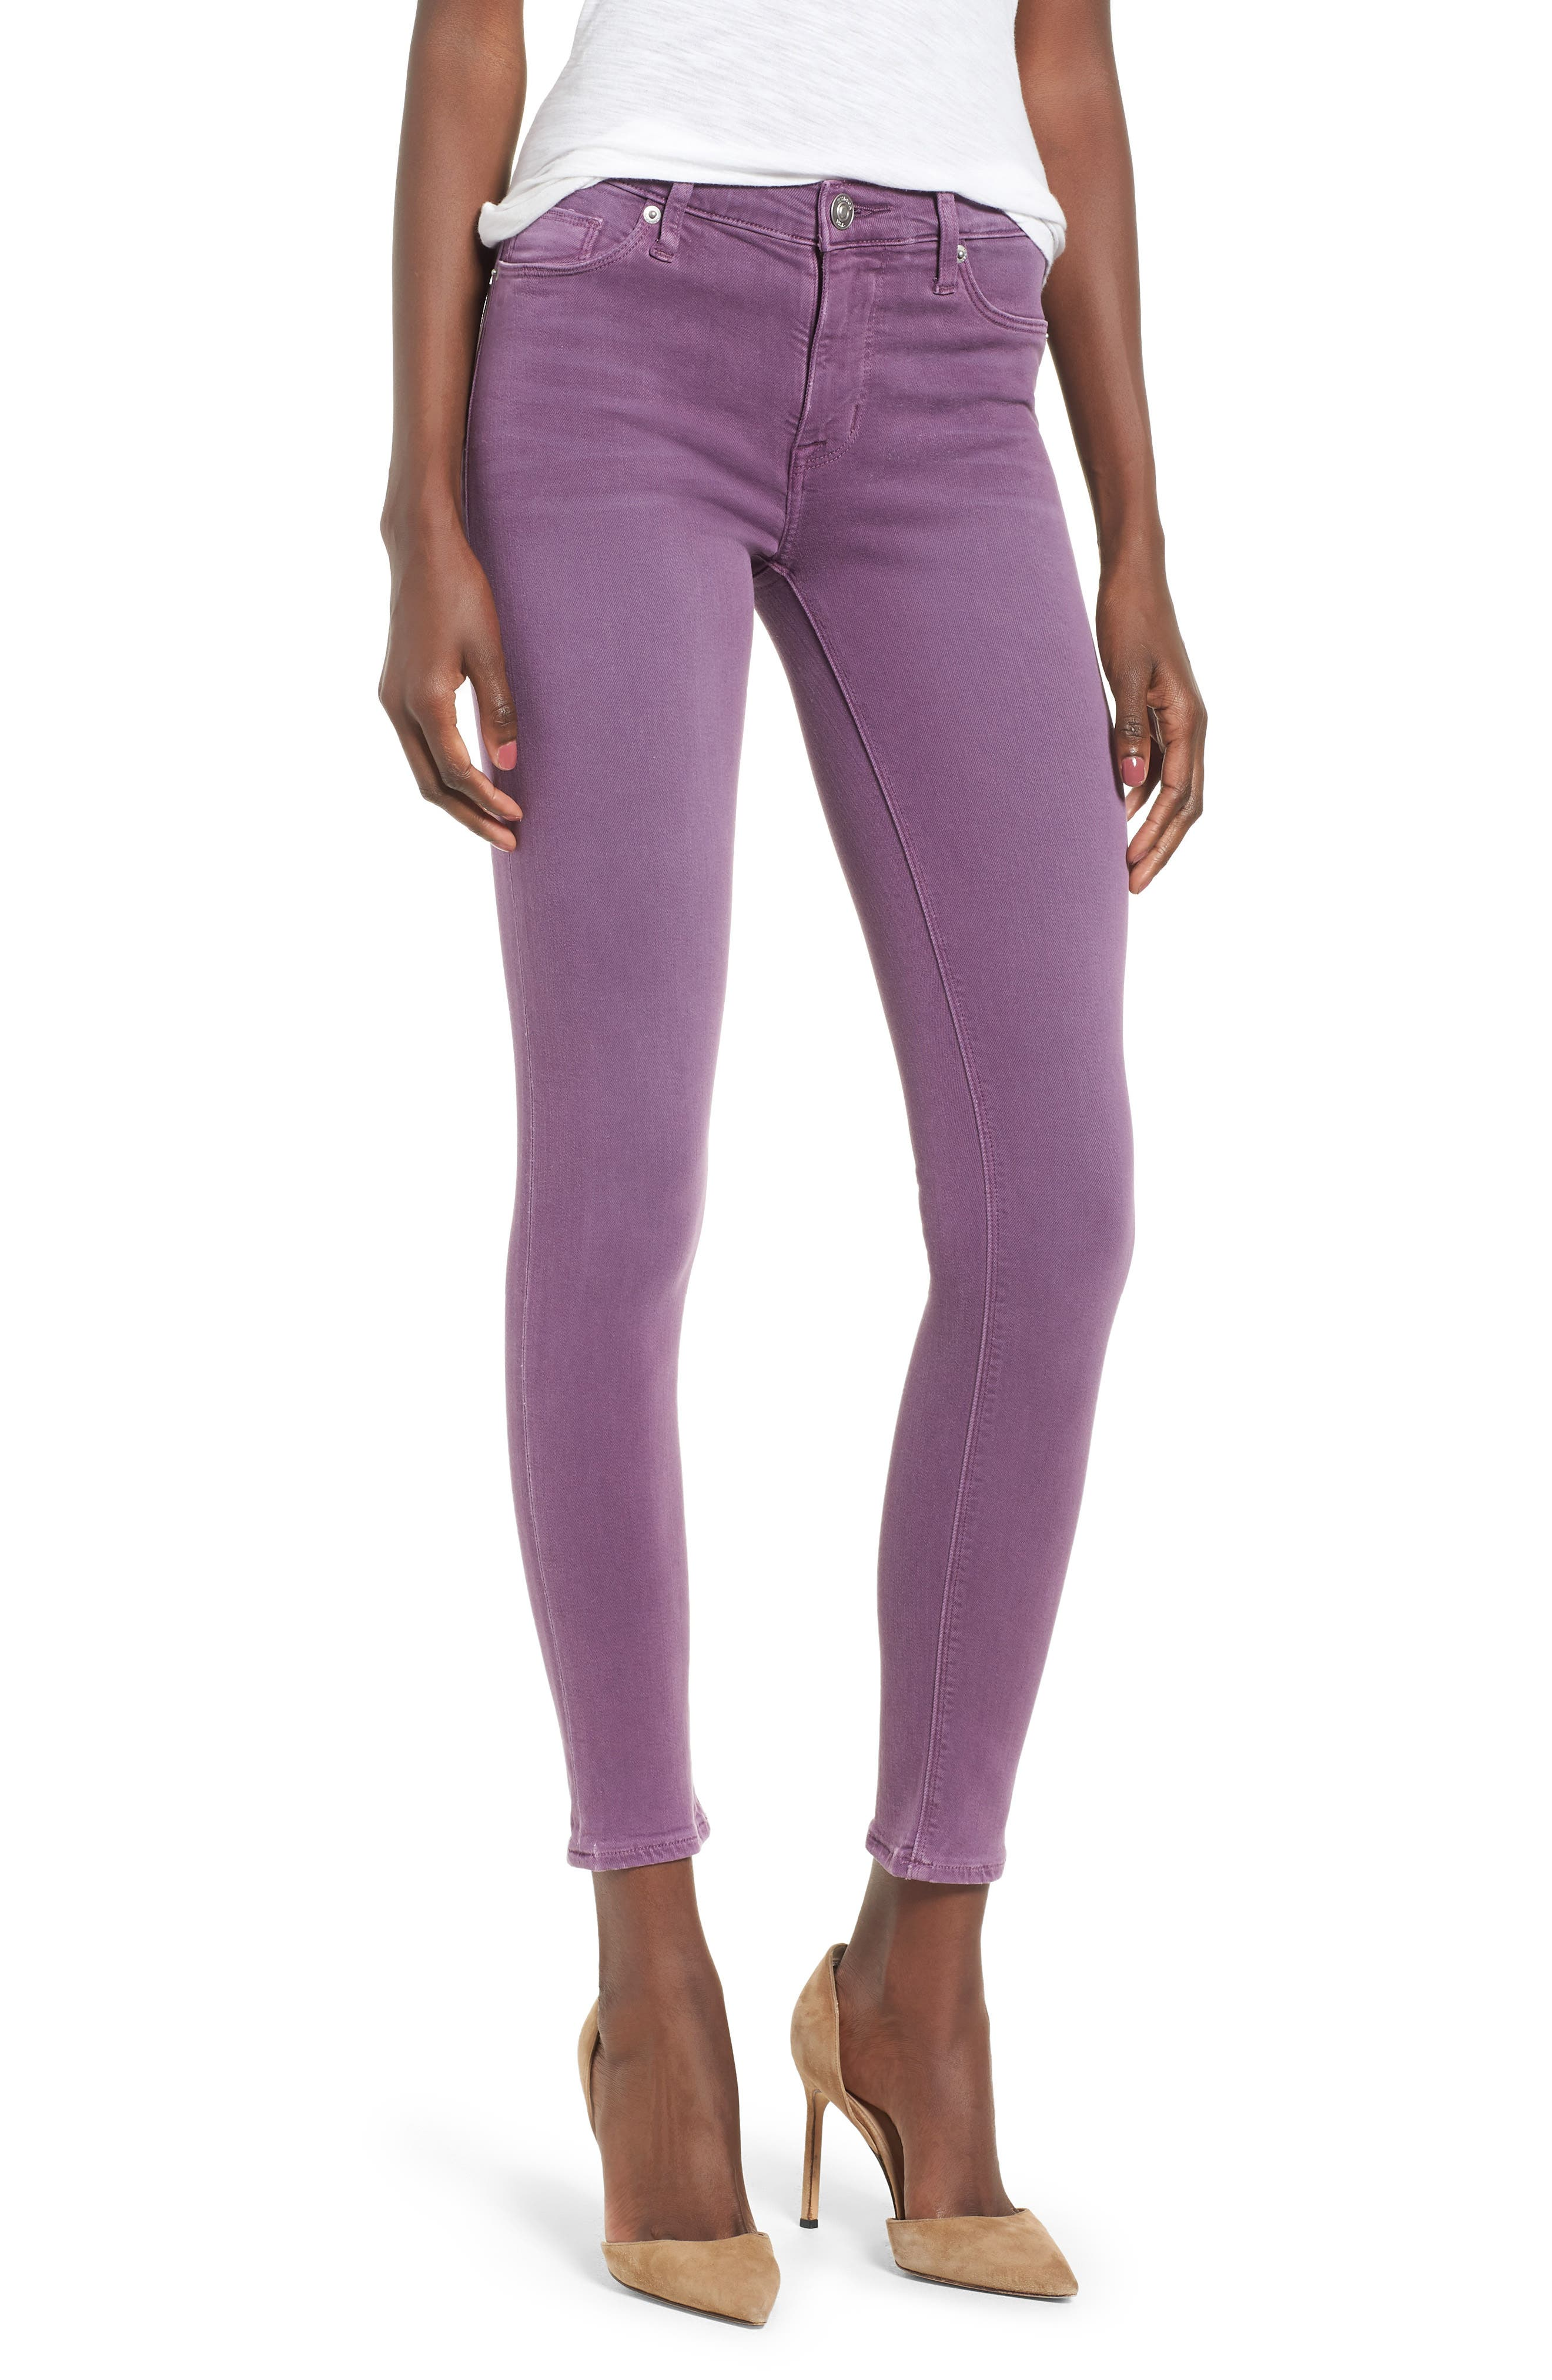 'Nico' Ankle Skinny Jeans,                             Main thumbnail 1, color,                             Dusted Orchid